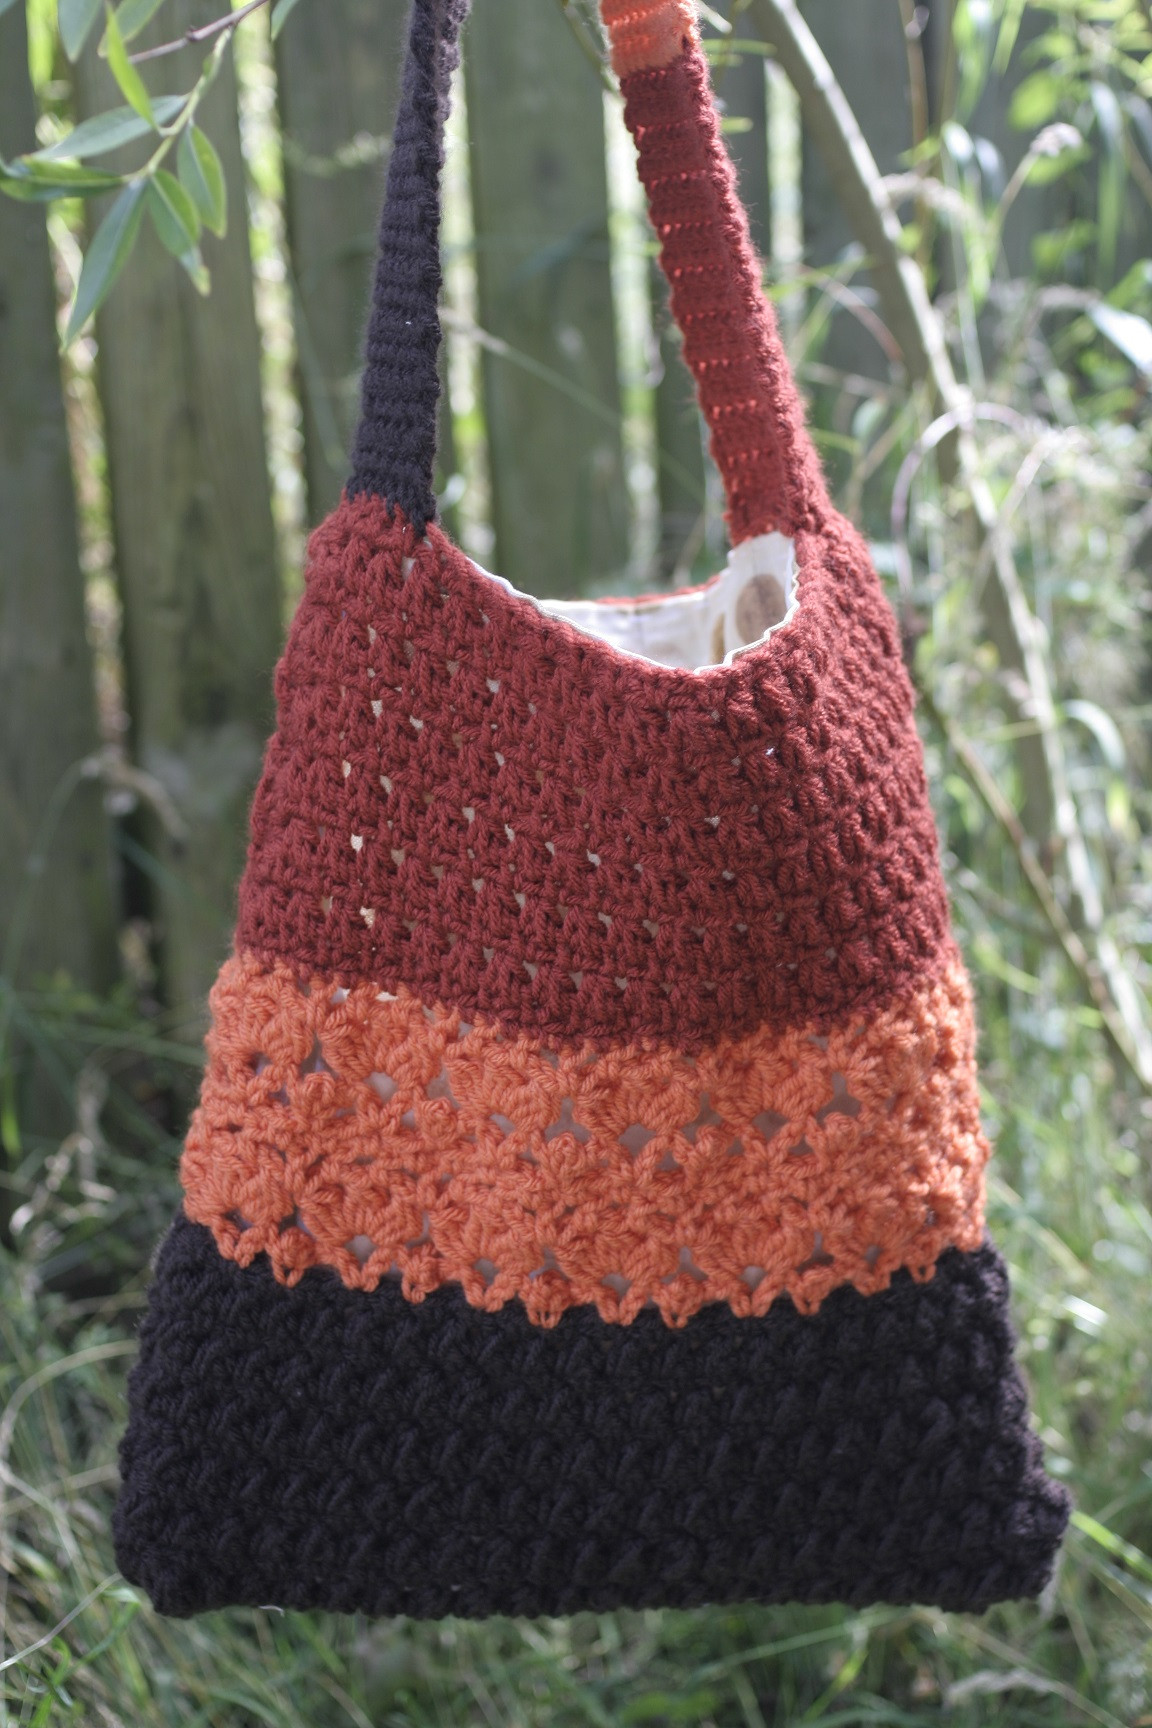 Crochet Patterns for Bags Lovely Lace Shoulder Bag – Free Pattern – Catkin and Et Of Incredible 40 Pics Crochet Patterns for Bags